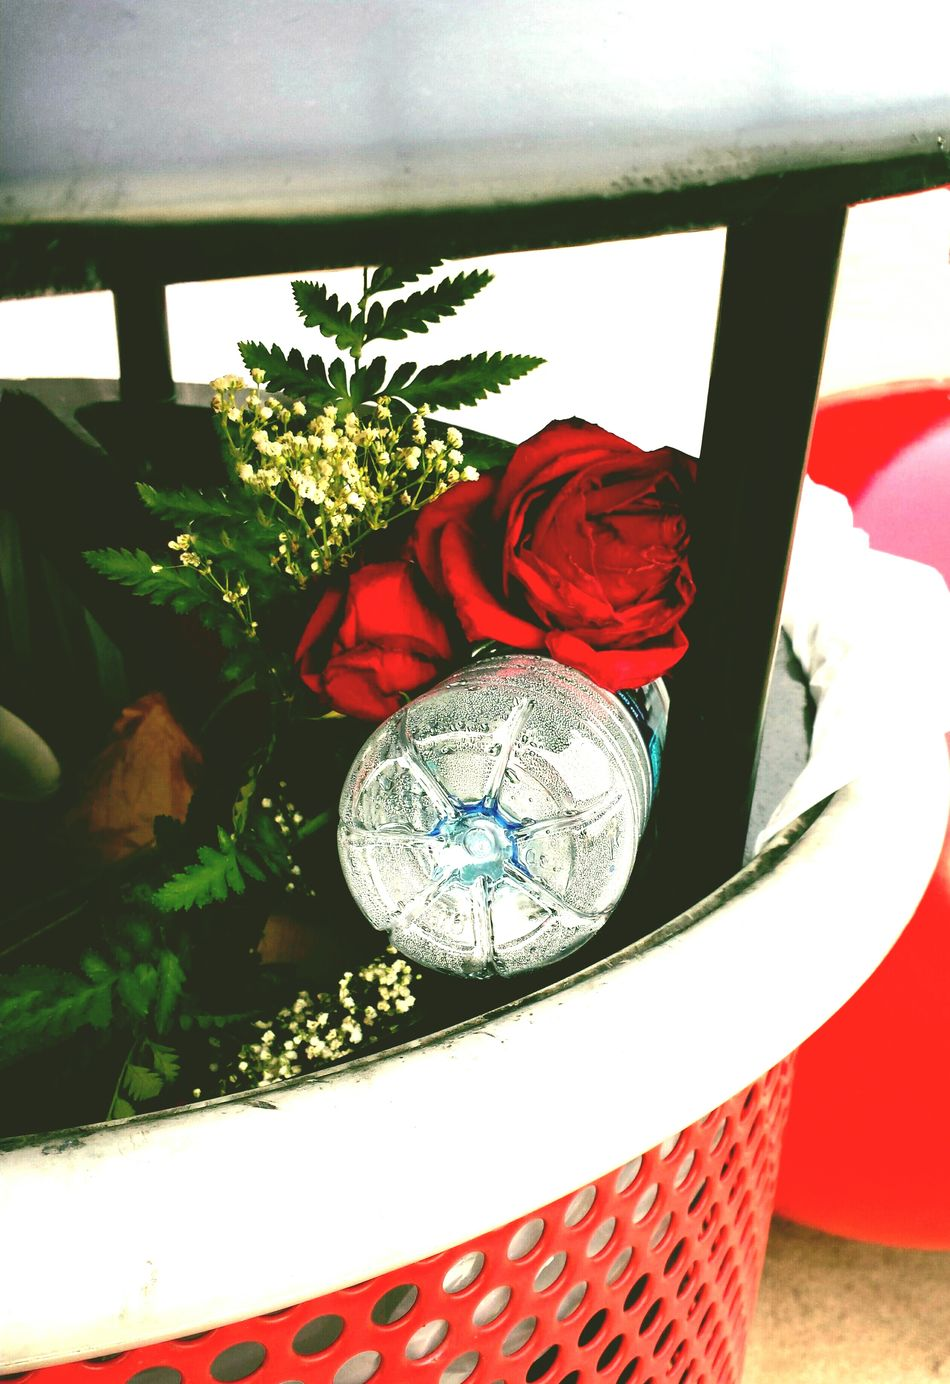 The result of quarreling True Love Roses Garbage Can Beautiful Garbage Relationships Garbage Art Garbage Red Rose Check This Out Trash Photographic Memory The Week On Eyem EyeEm Best Shots - Flowers Eyeem Best Shots - Roses EyeEm Best Shots Quarreling Trash Can Trashcan Trash Can Art